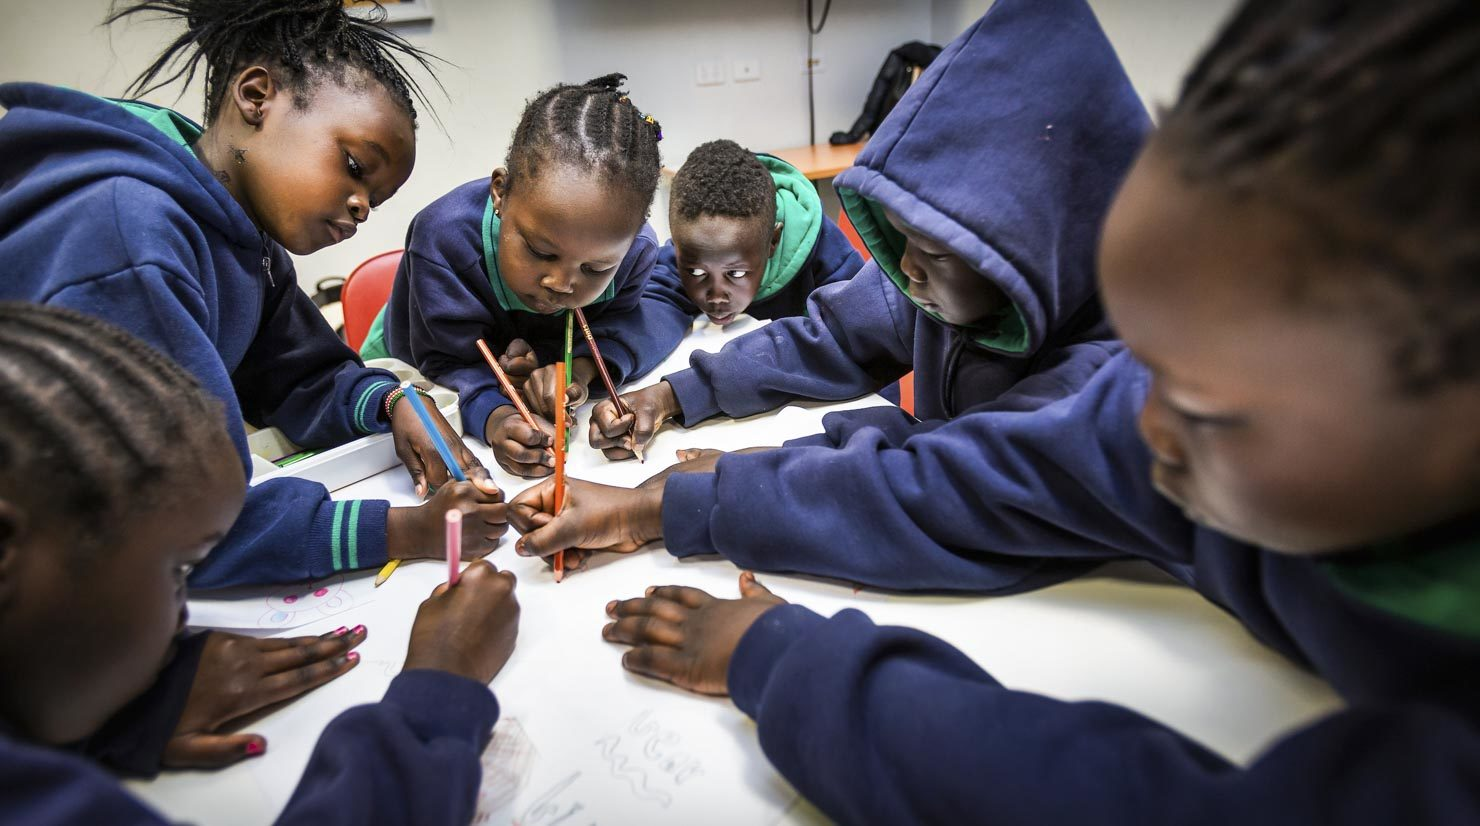 African Australian school children drawing